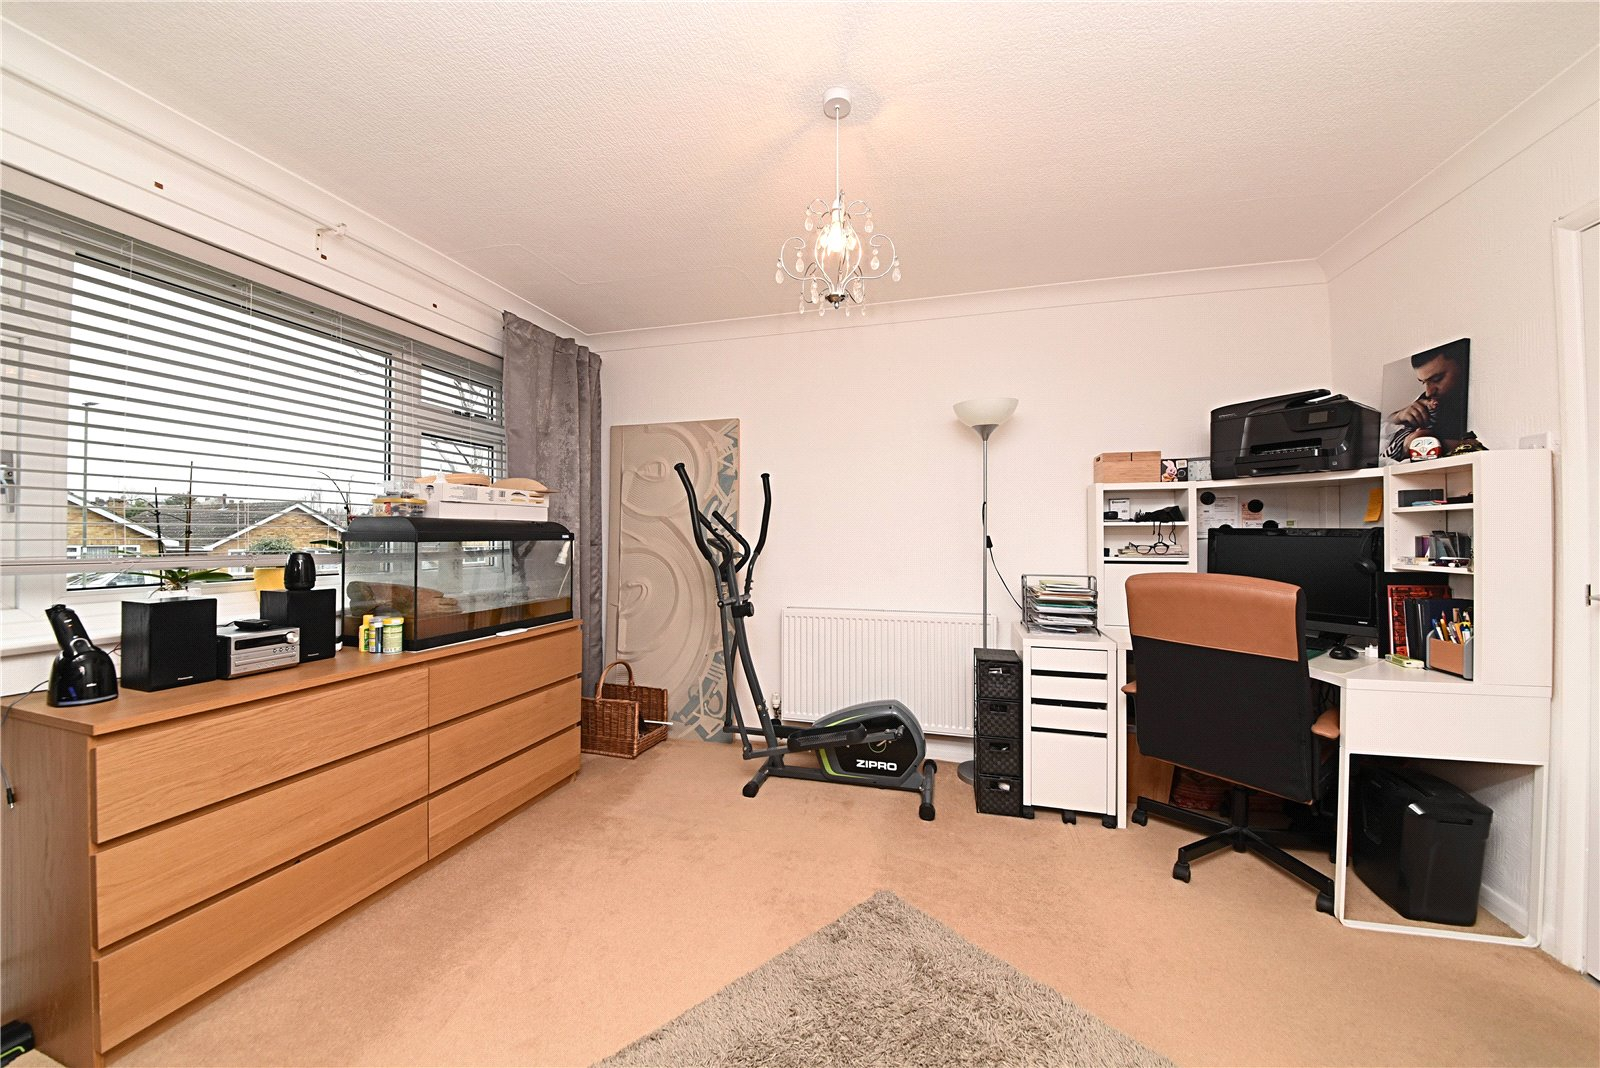 2 bed bungalow for sale in Barnet, EN4 9QT 7